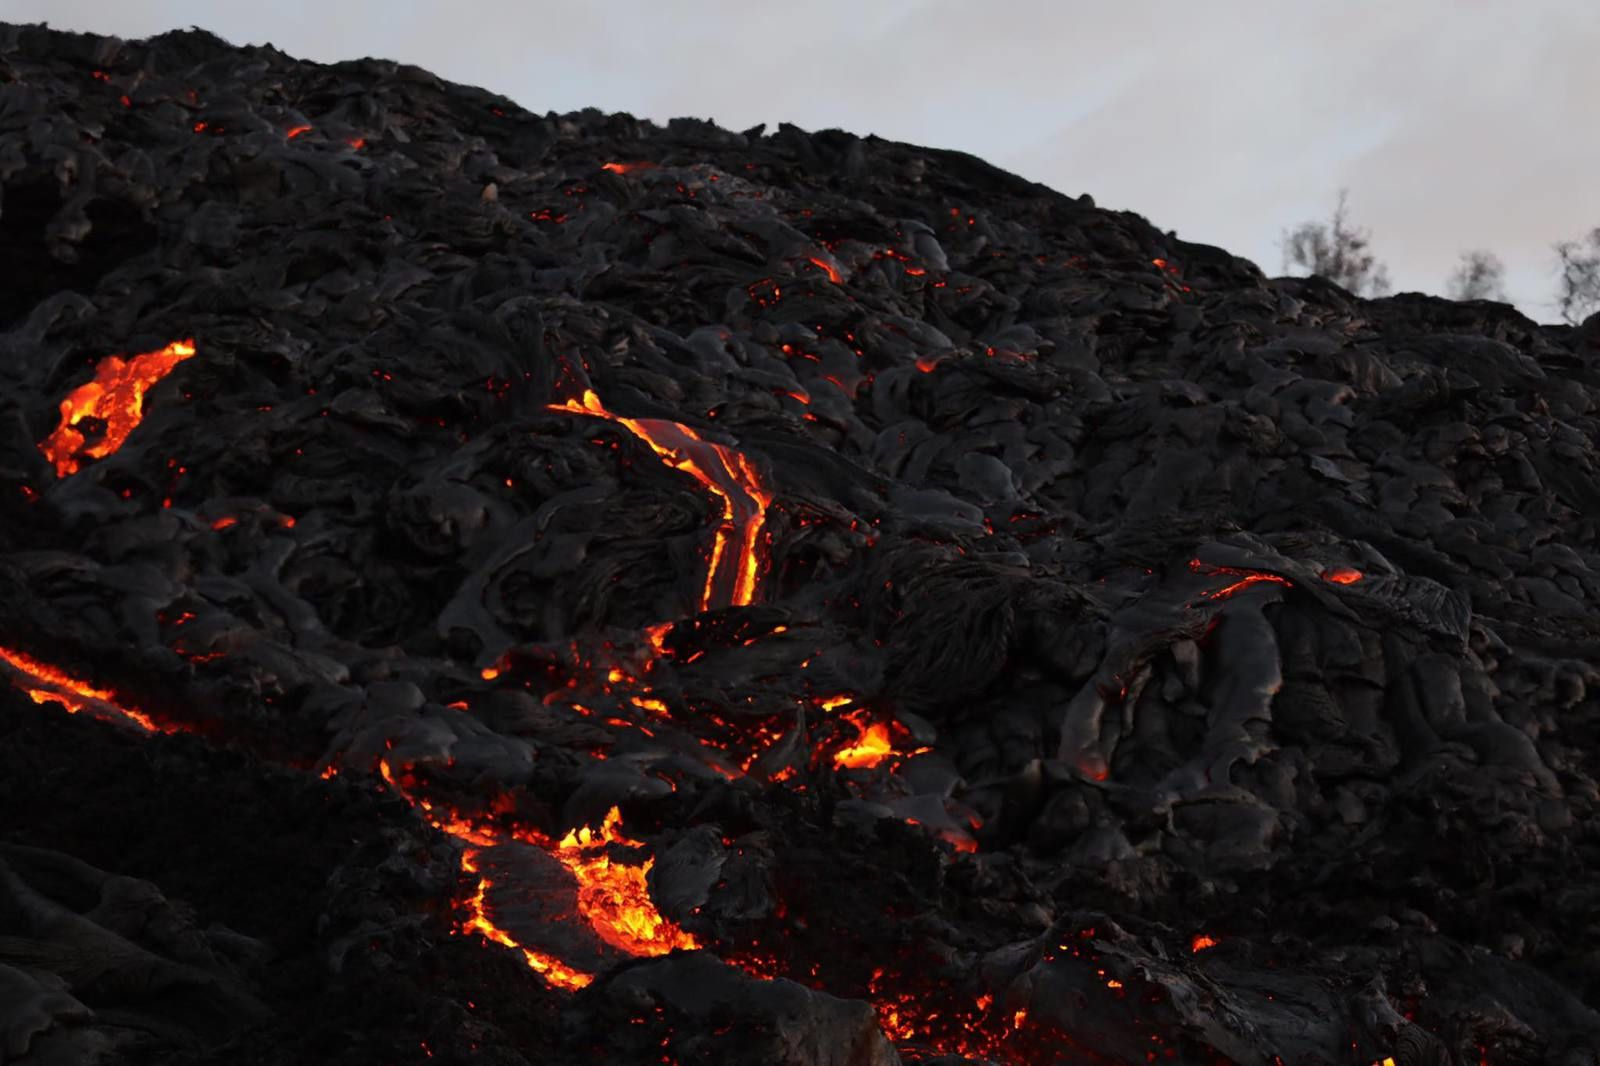 Kilauea / Pu'u O'o -  61 g lavas on the Pali - photo John Tarson / Epic Lava 21.02.2017